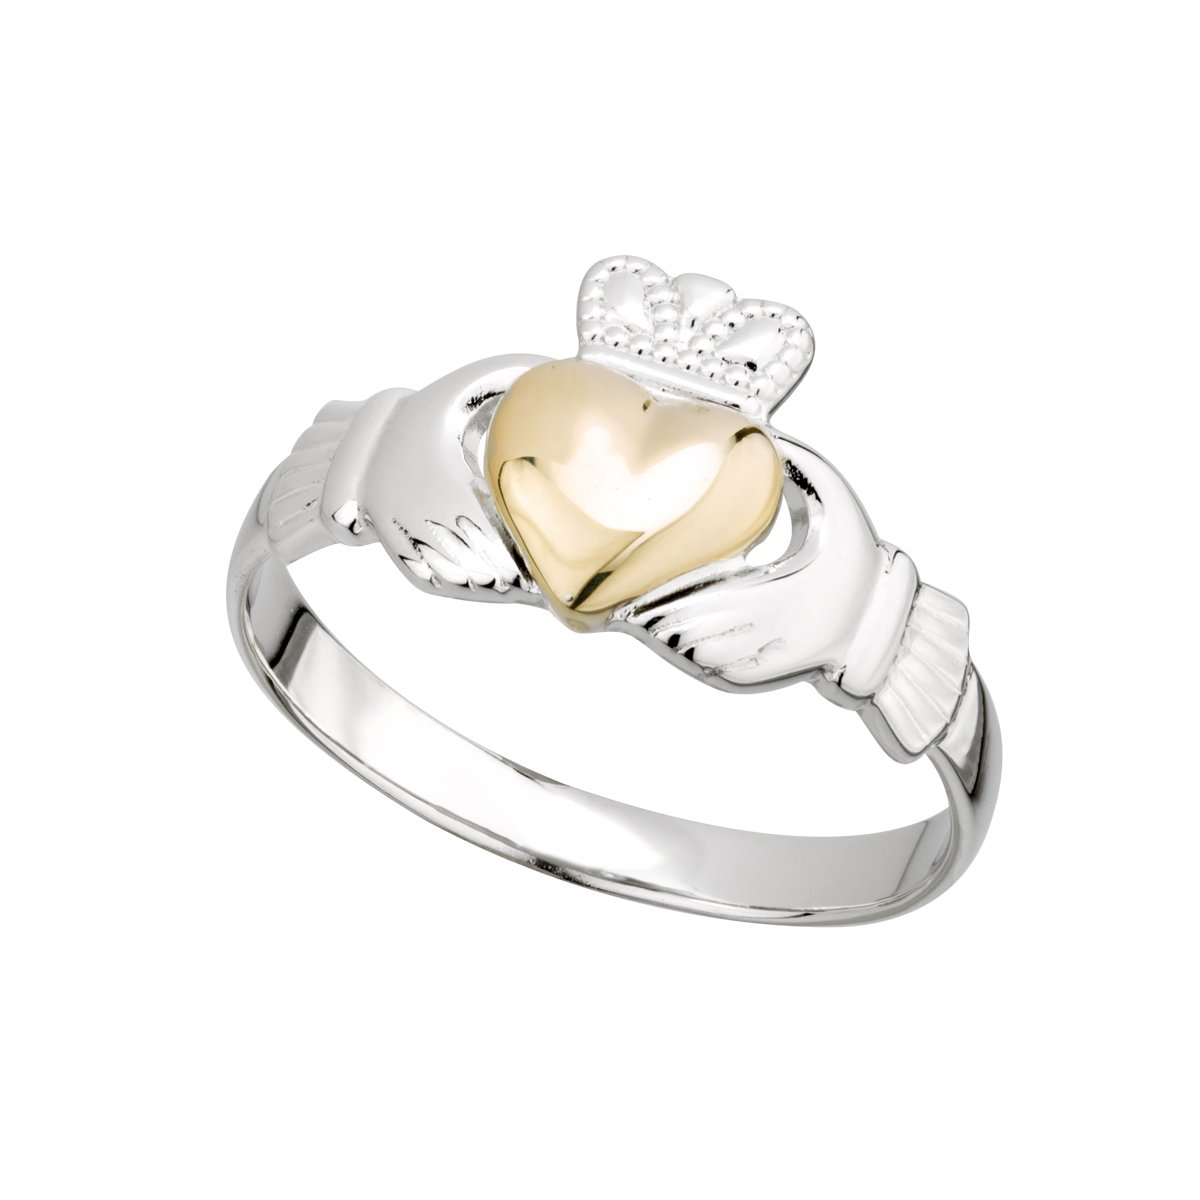 Ladies Claddagh Ring Sterling Silver & 10k Yellow Gold Heart, Sz 7